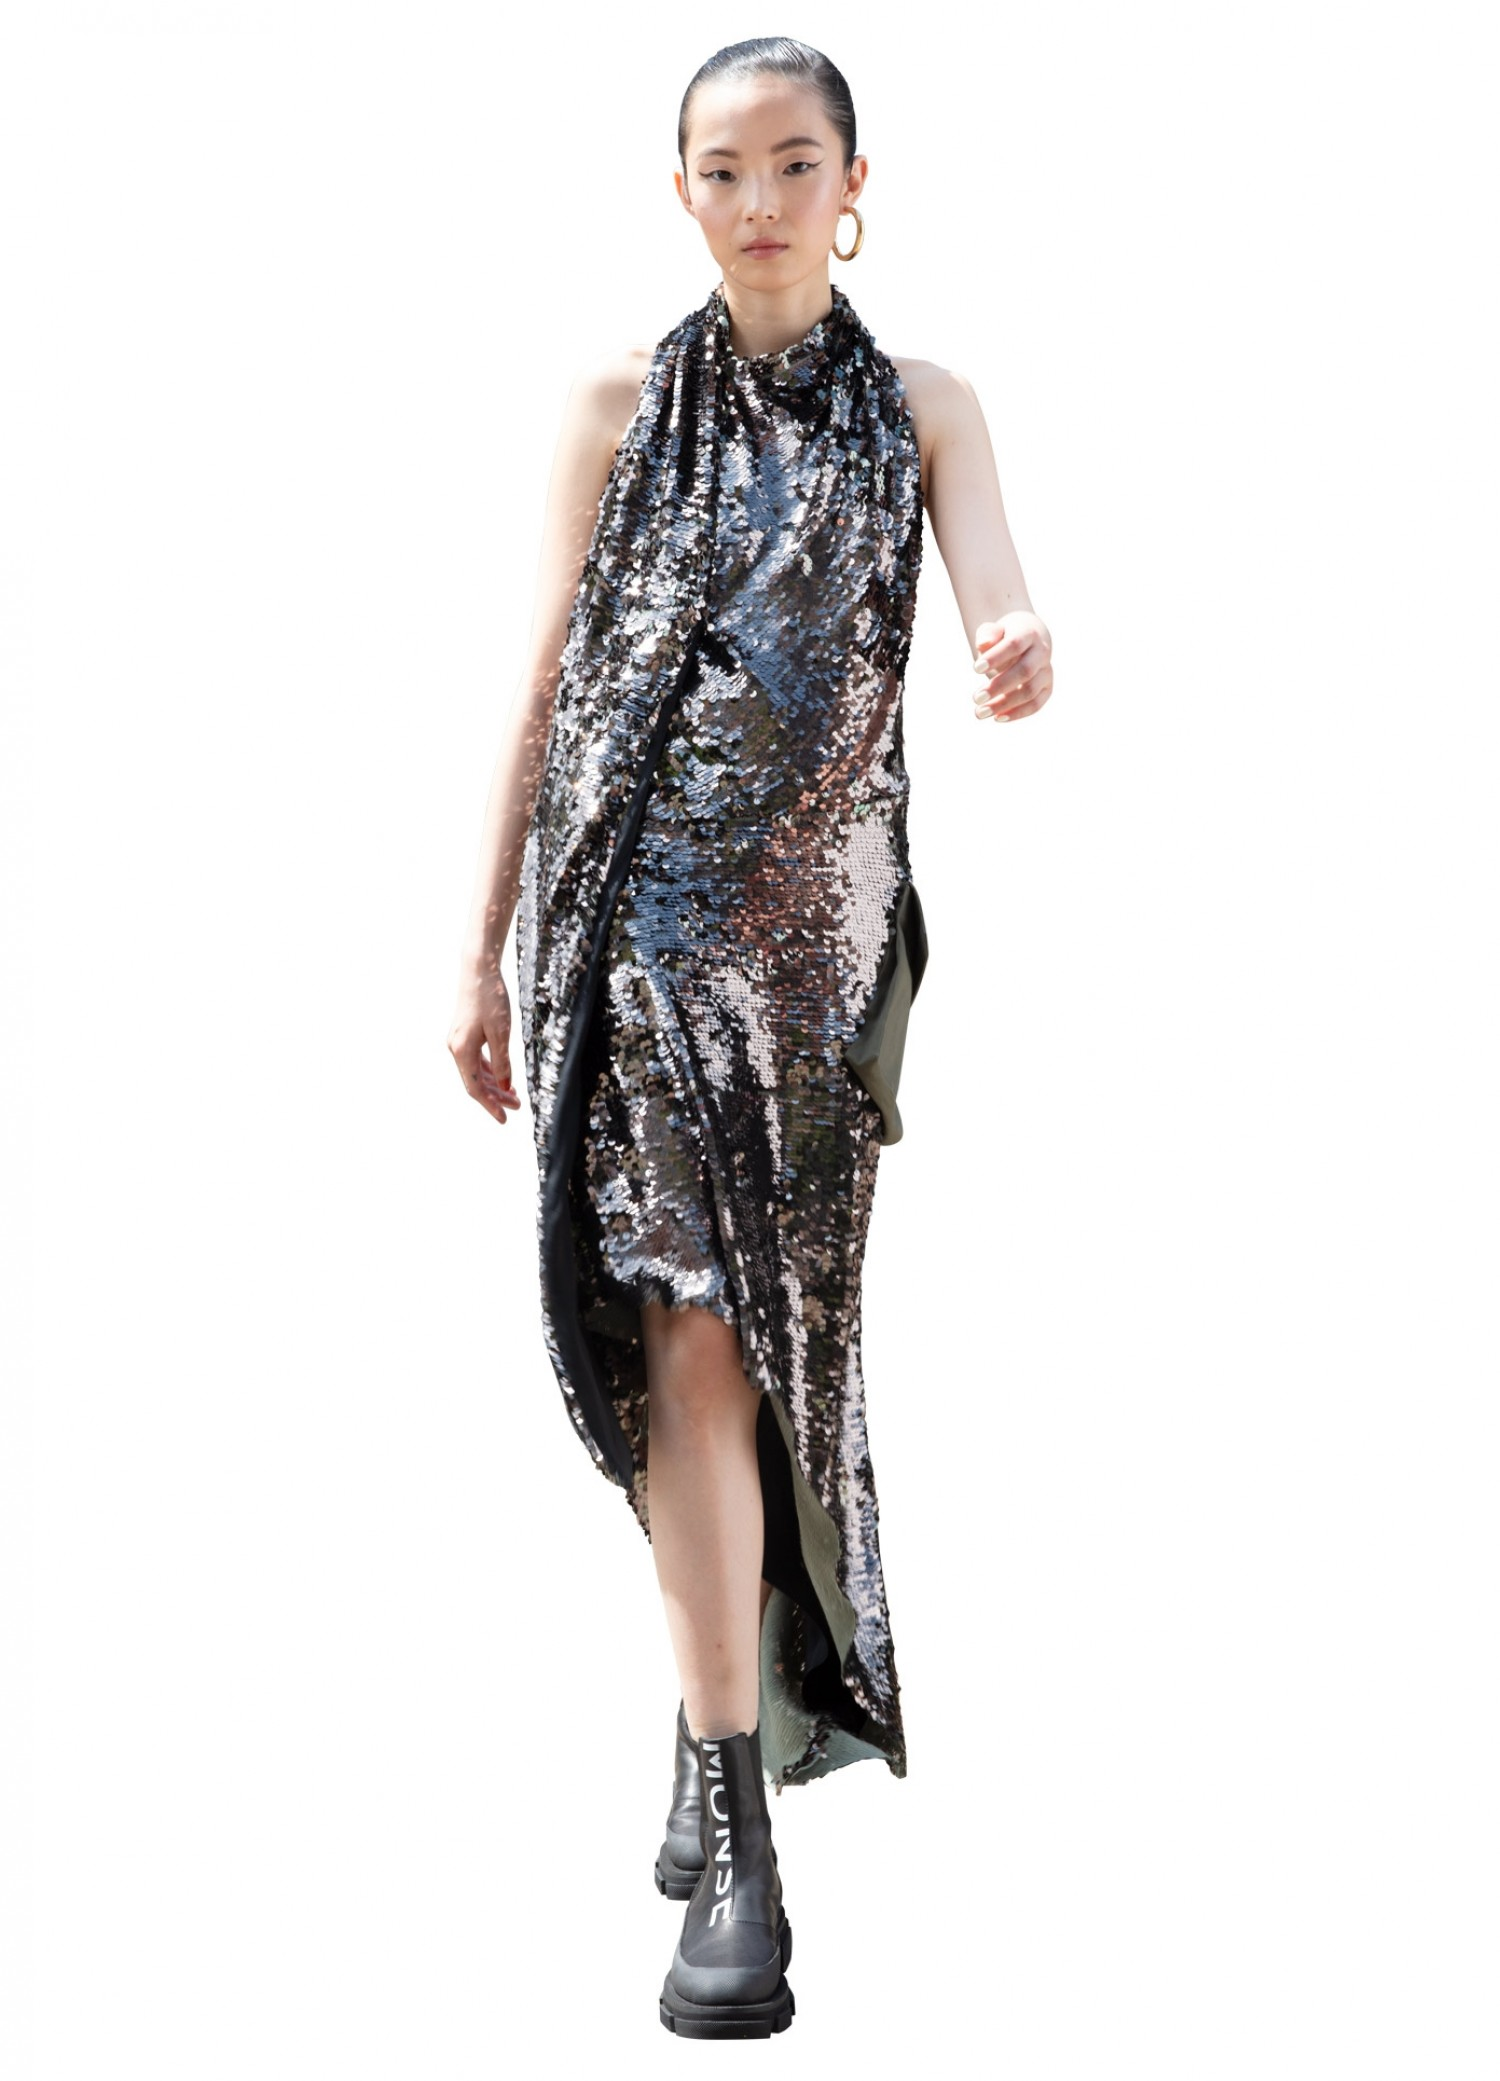 MONSE Cargo Sequin Gown in Olive on Model Front View